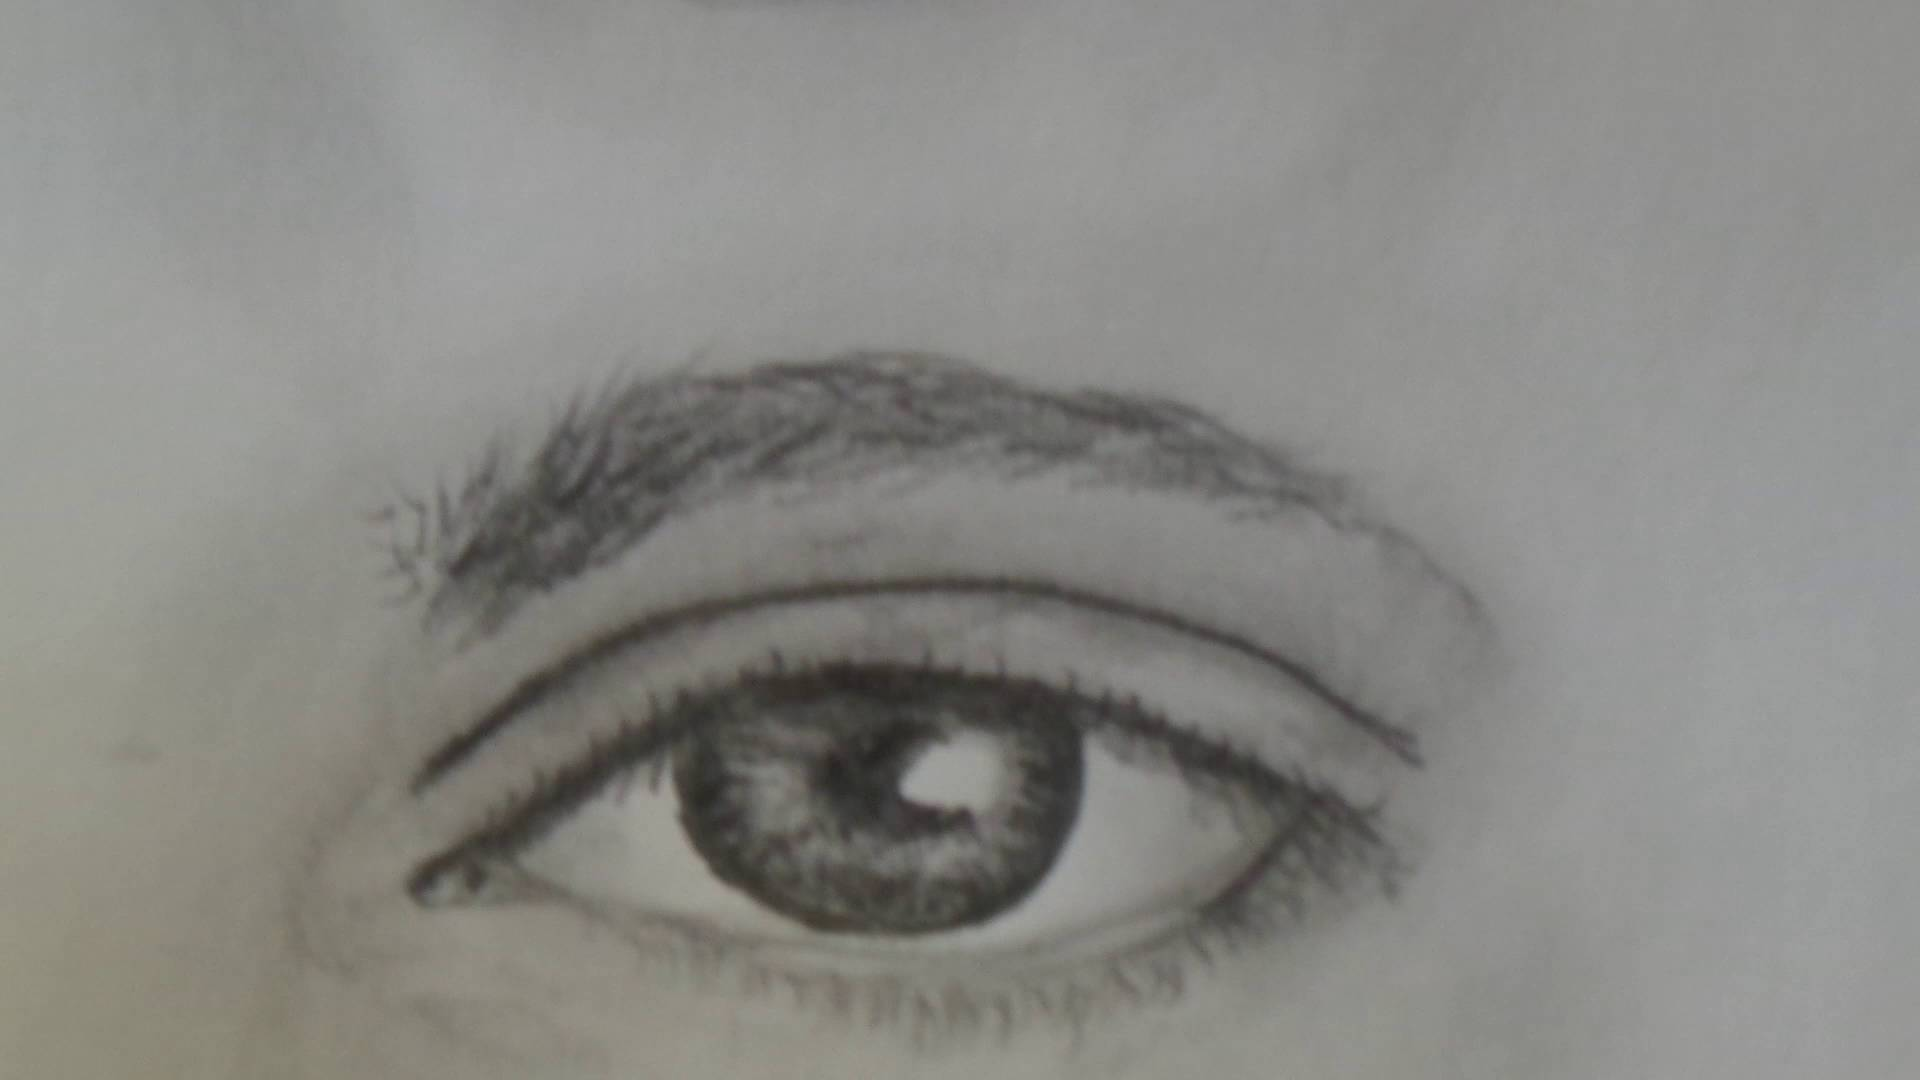 1920x1080 How To Draw A Realistic Male Eye For Beginners, Step By Step